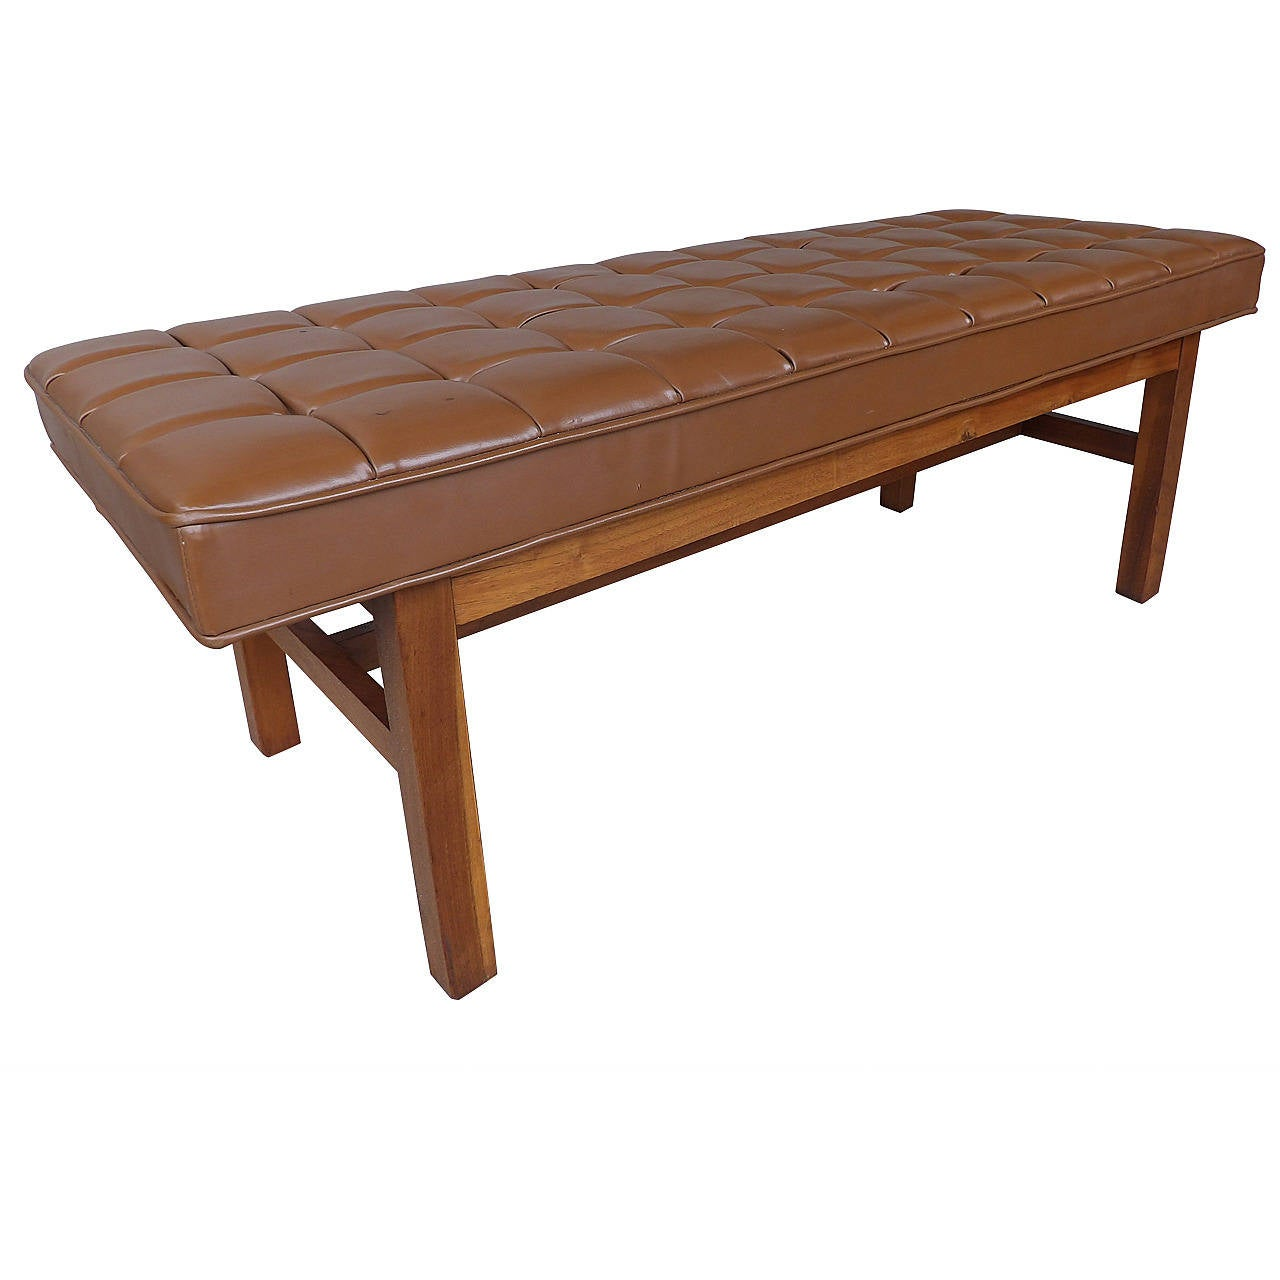 Classic Mid Century Modern Button Tufted Bench For Sale At 1stdibs